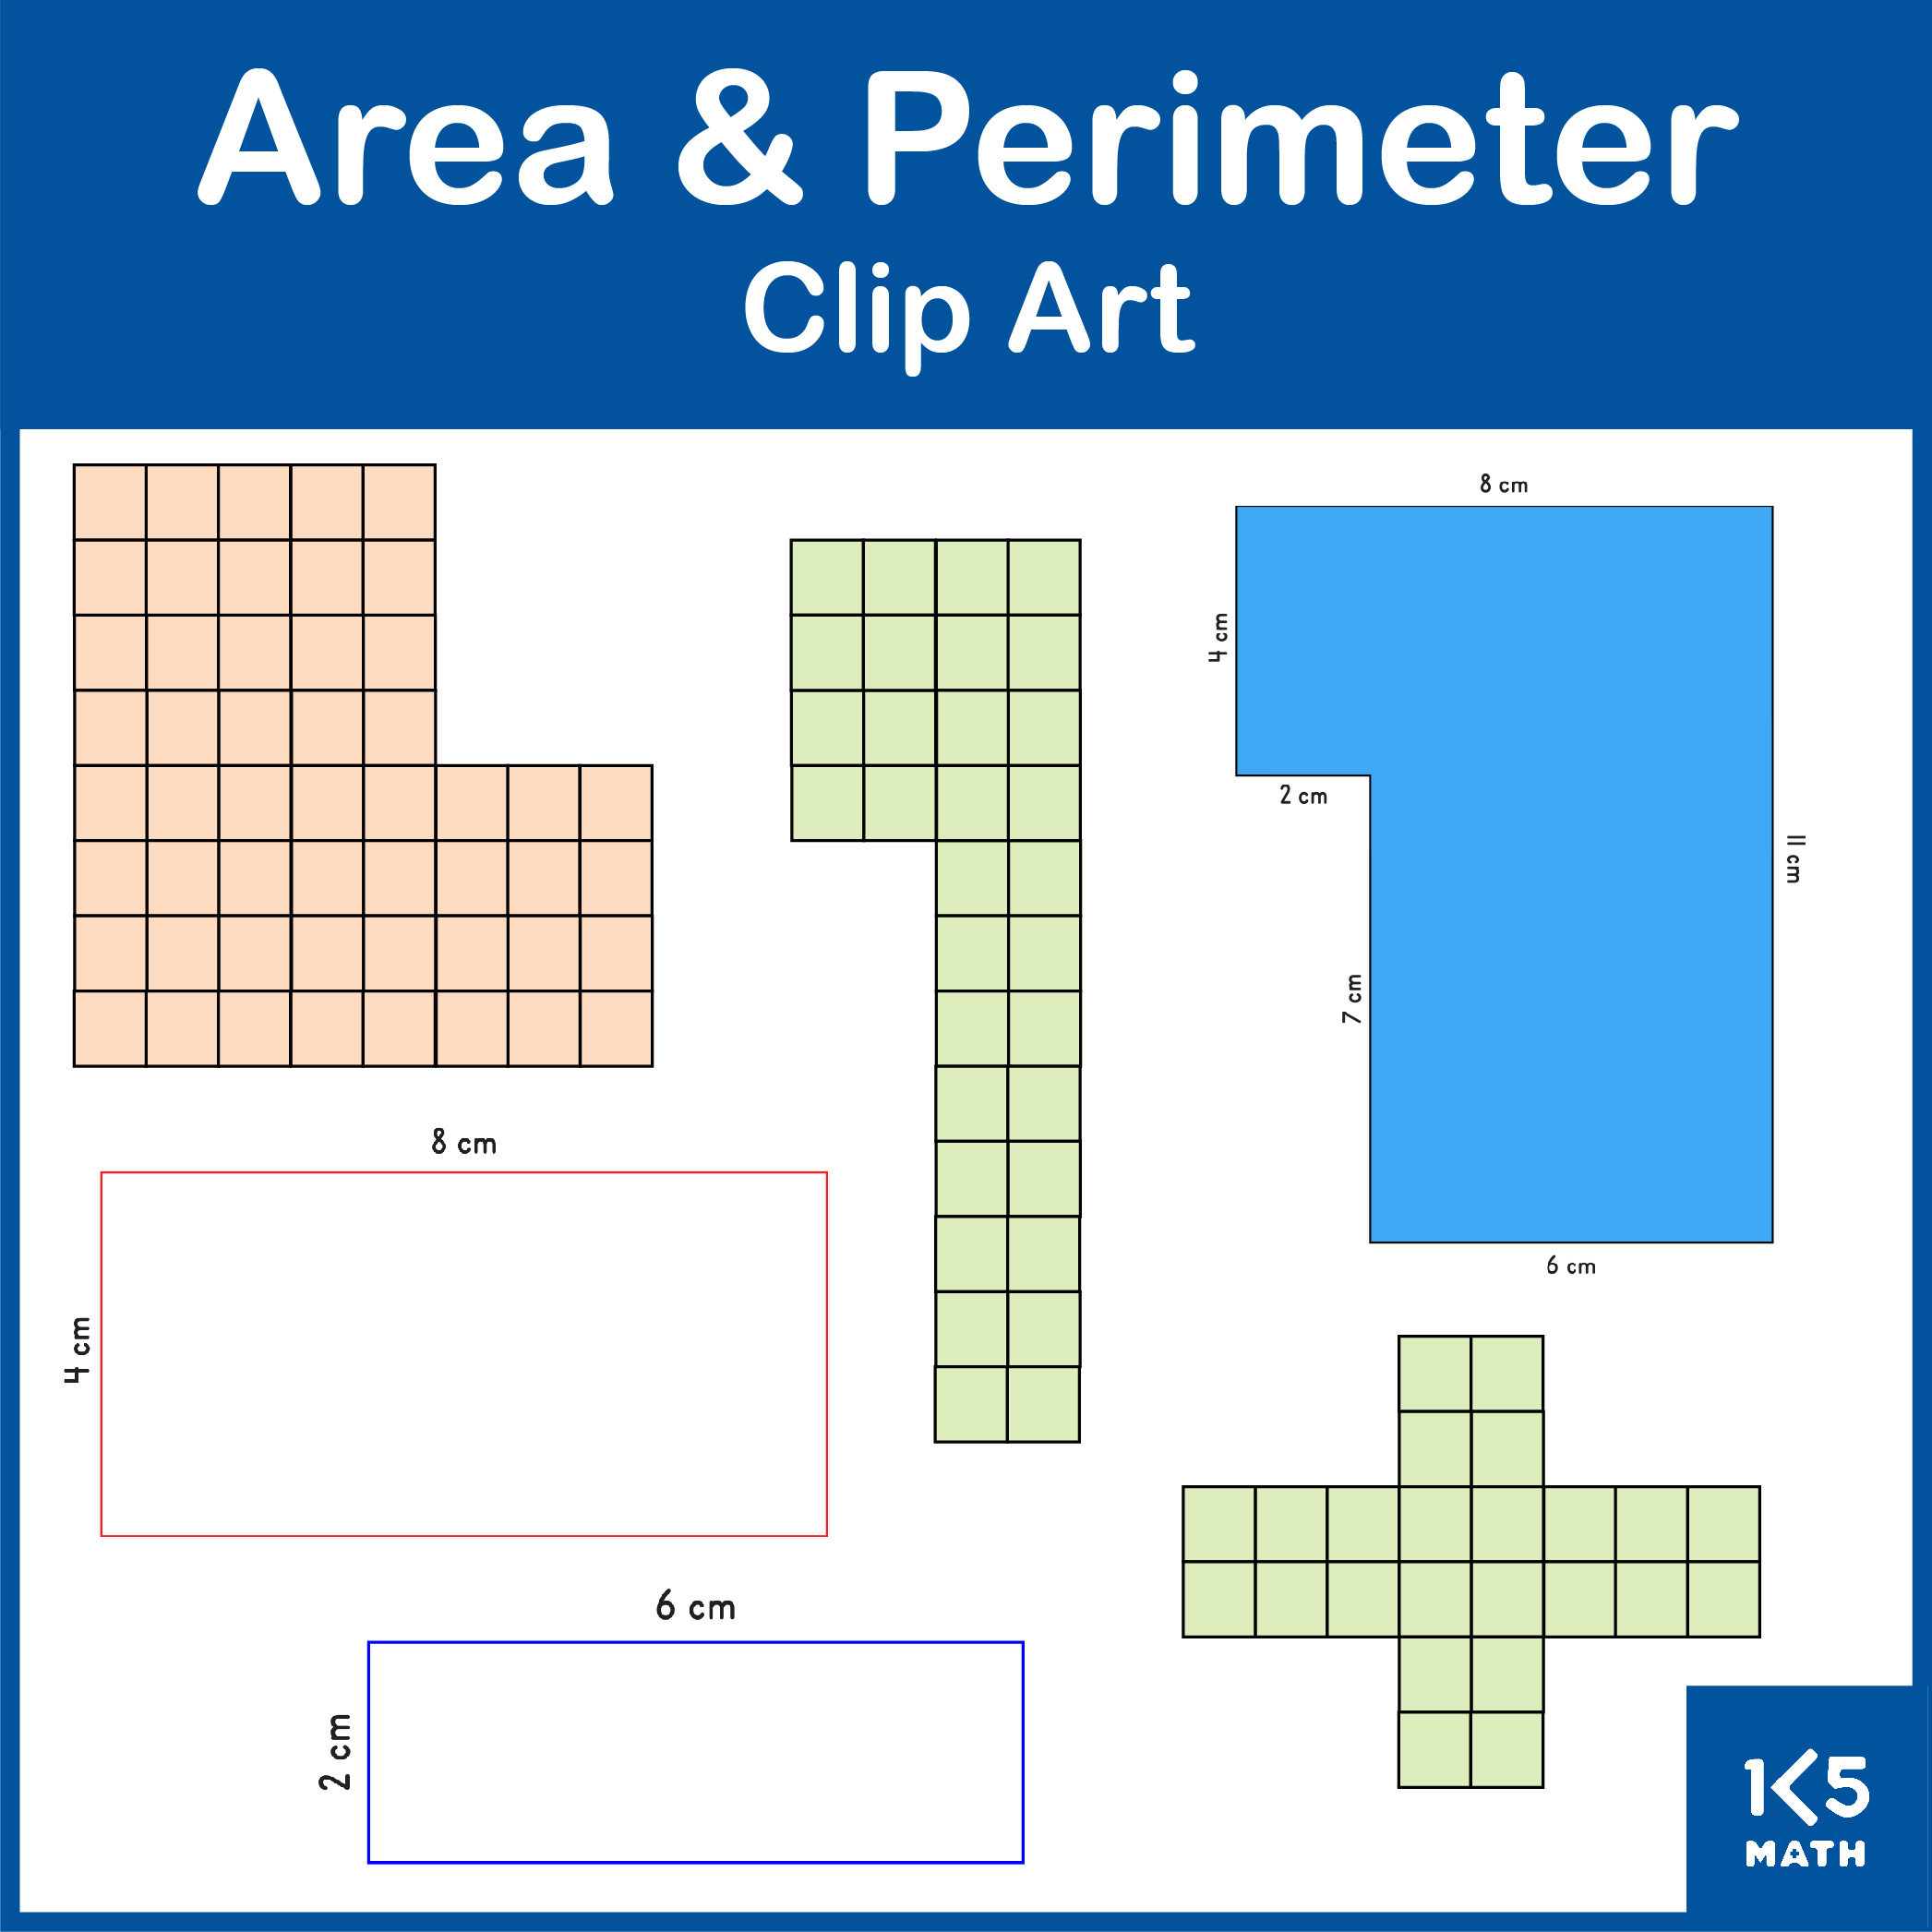 Area and Perimeter Clip Art